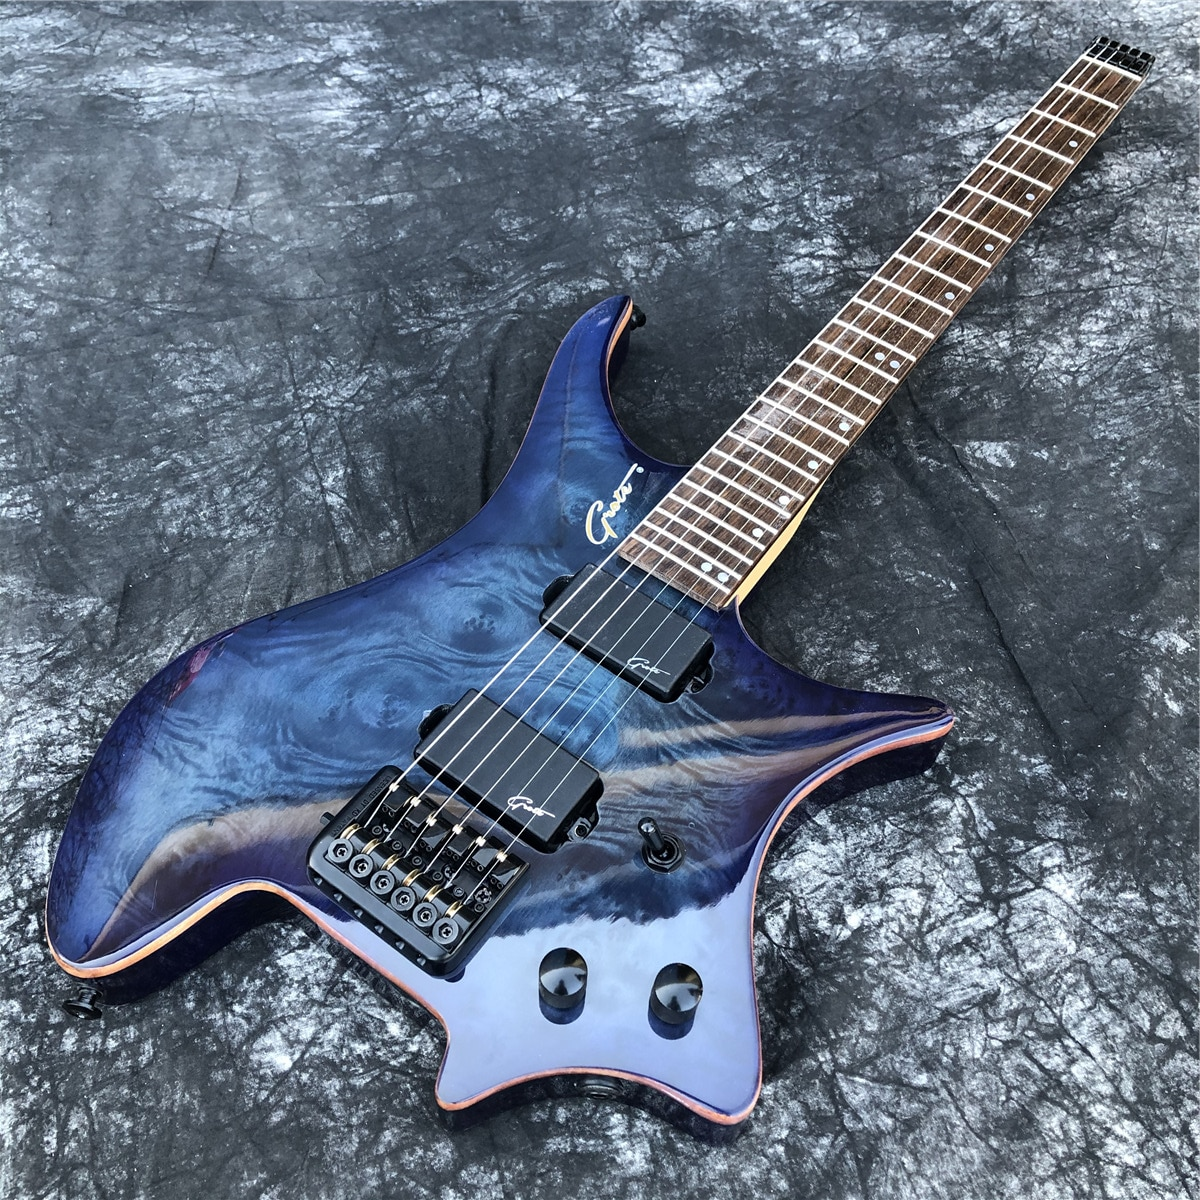 Grote Glossy Blue Burl 6 Strings Headless Electric Guitar with Black Hardwares,Real Photos,In Stock